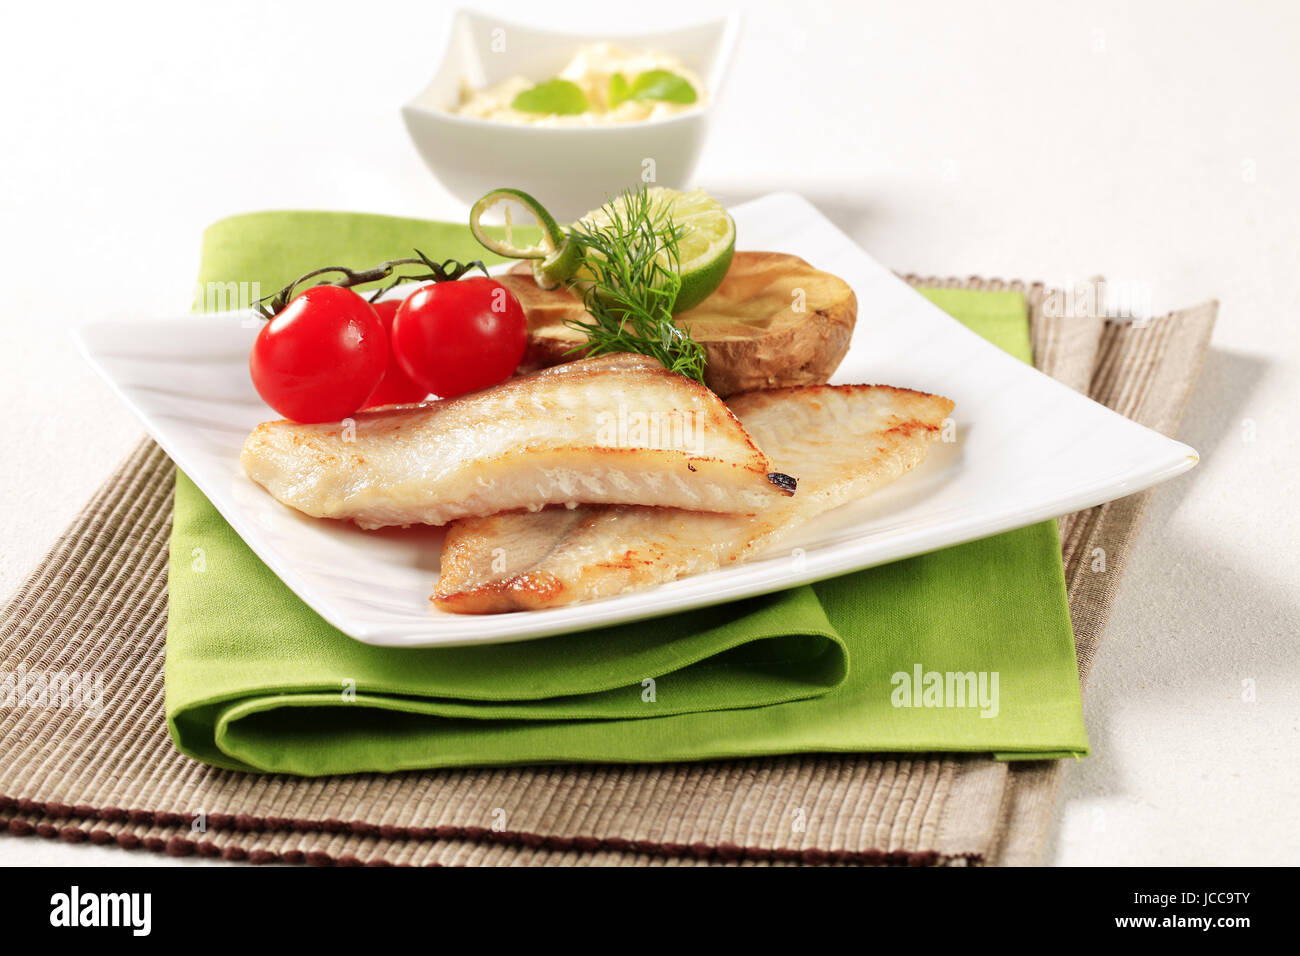 Pan fried fish fillets with roasted potato - Stock Image